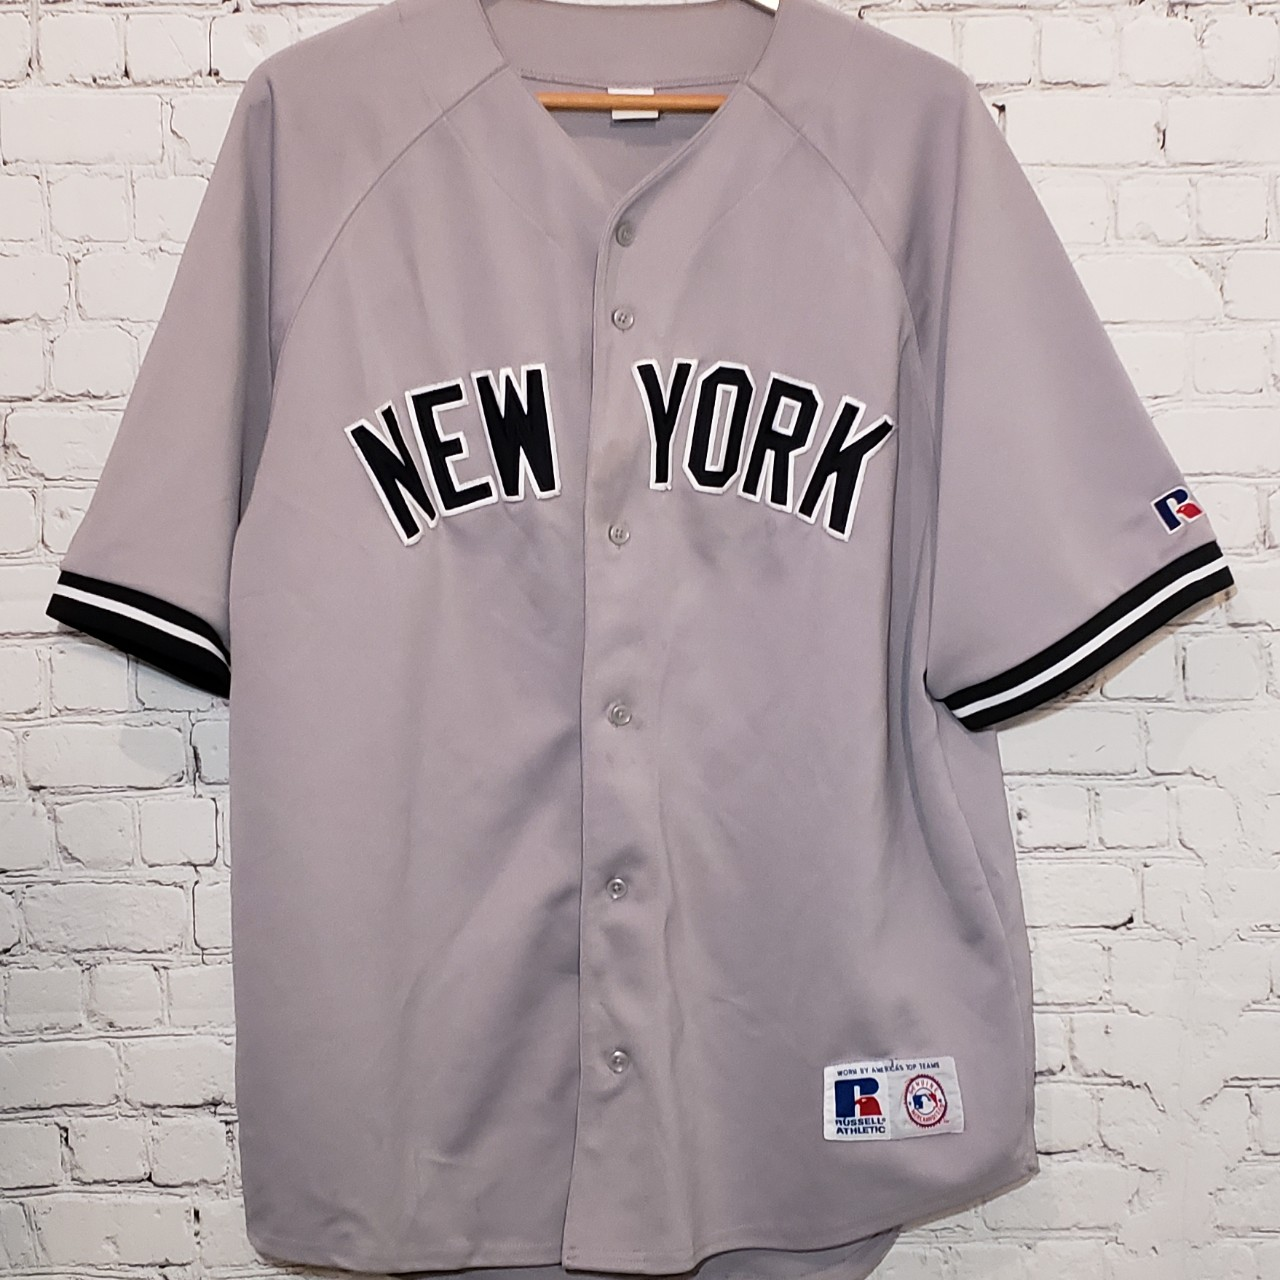 on sale e1390 0a06f NEW YORK YANKEES away Jersey, vintage, a part of my ...